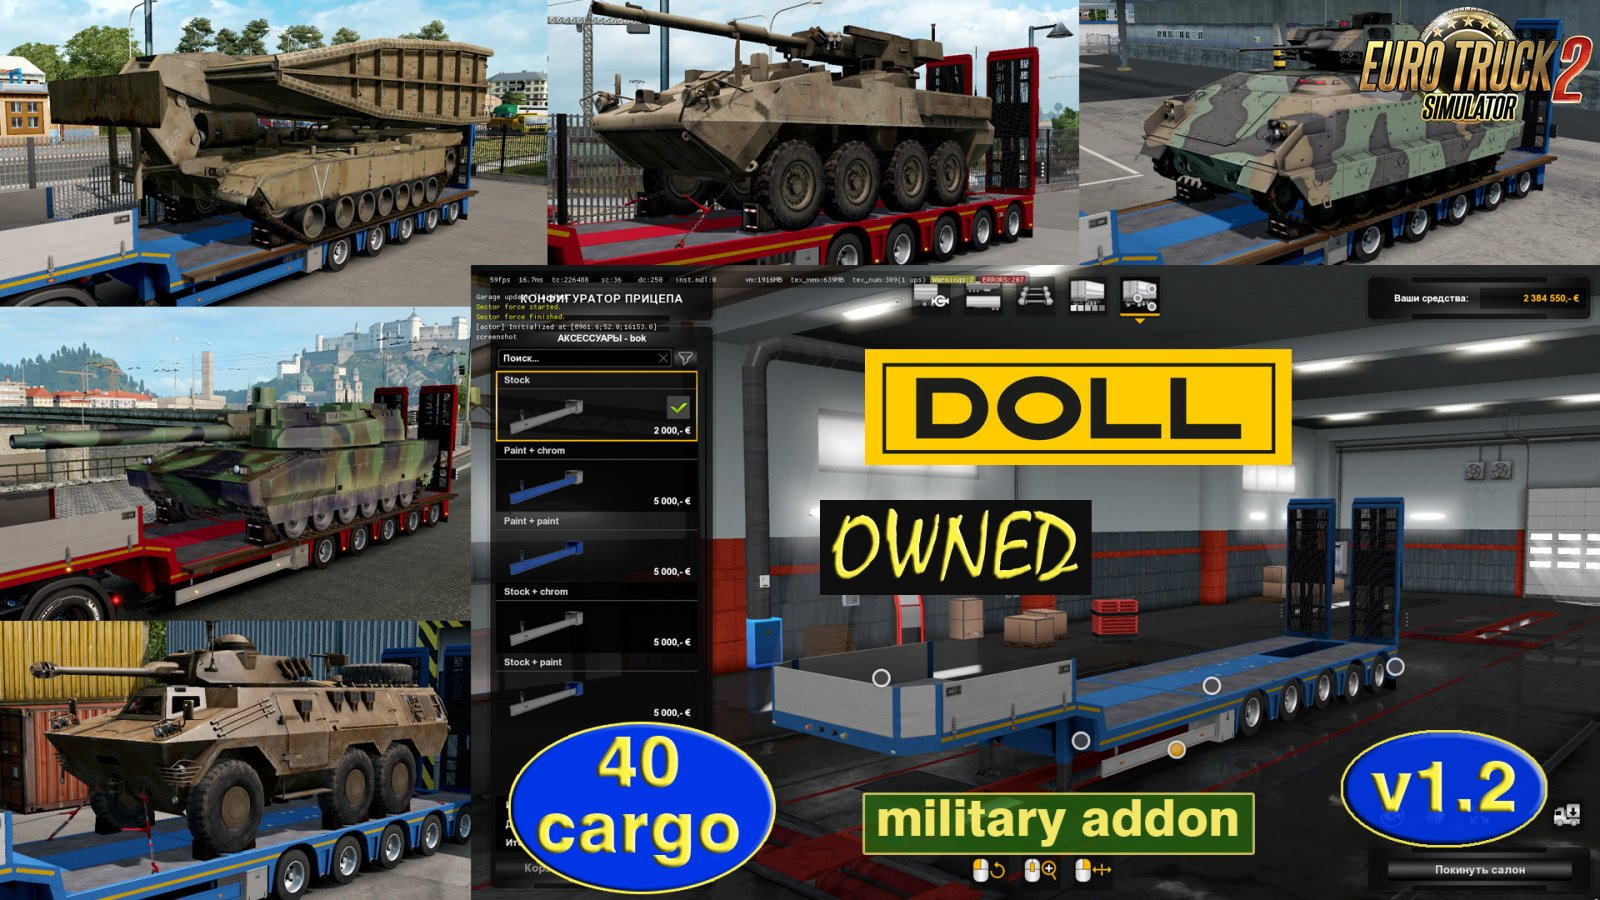 Military addon for Doll Panther v1.2 by Jazzycat